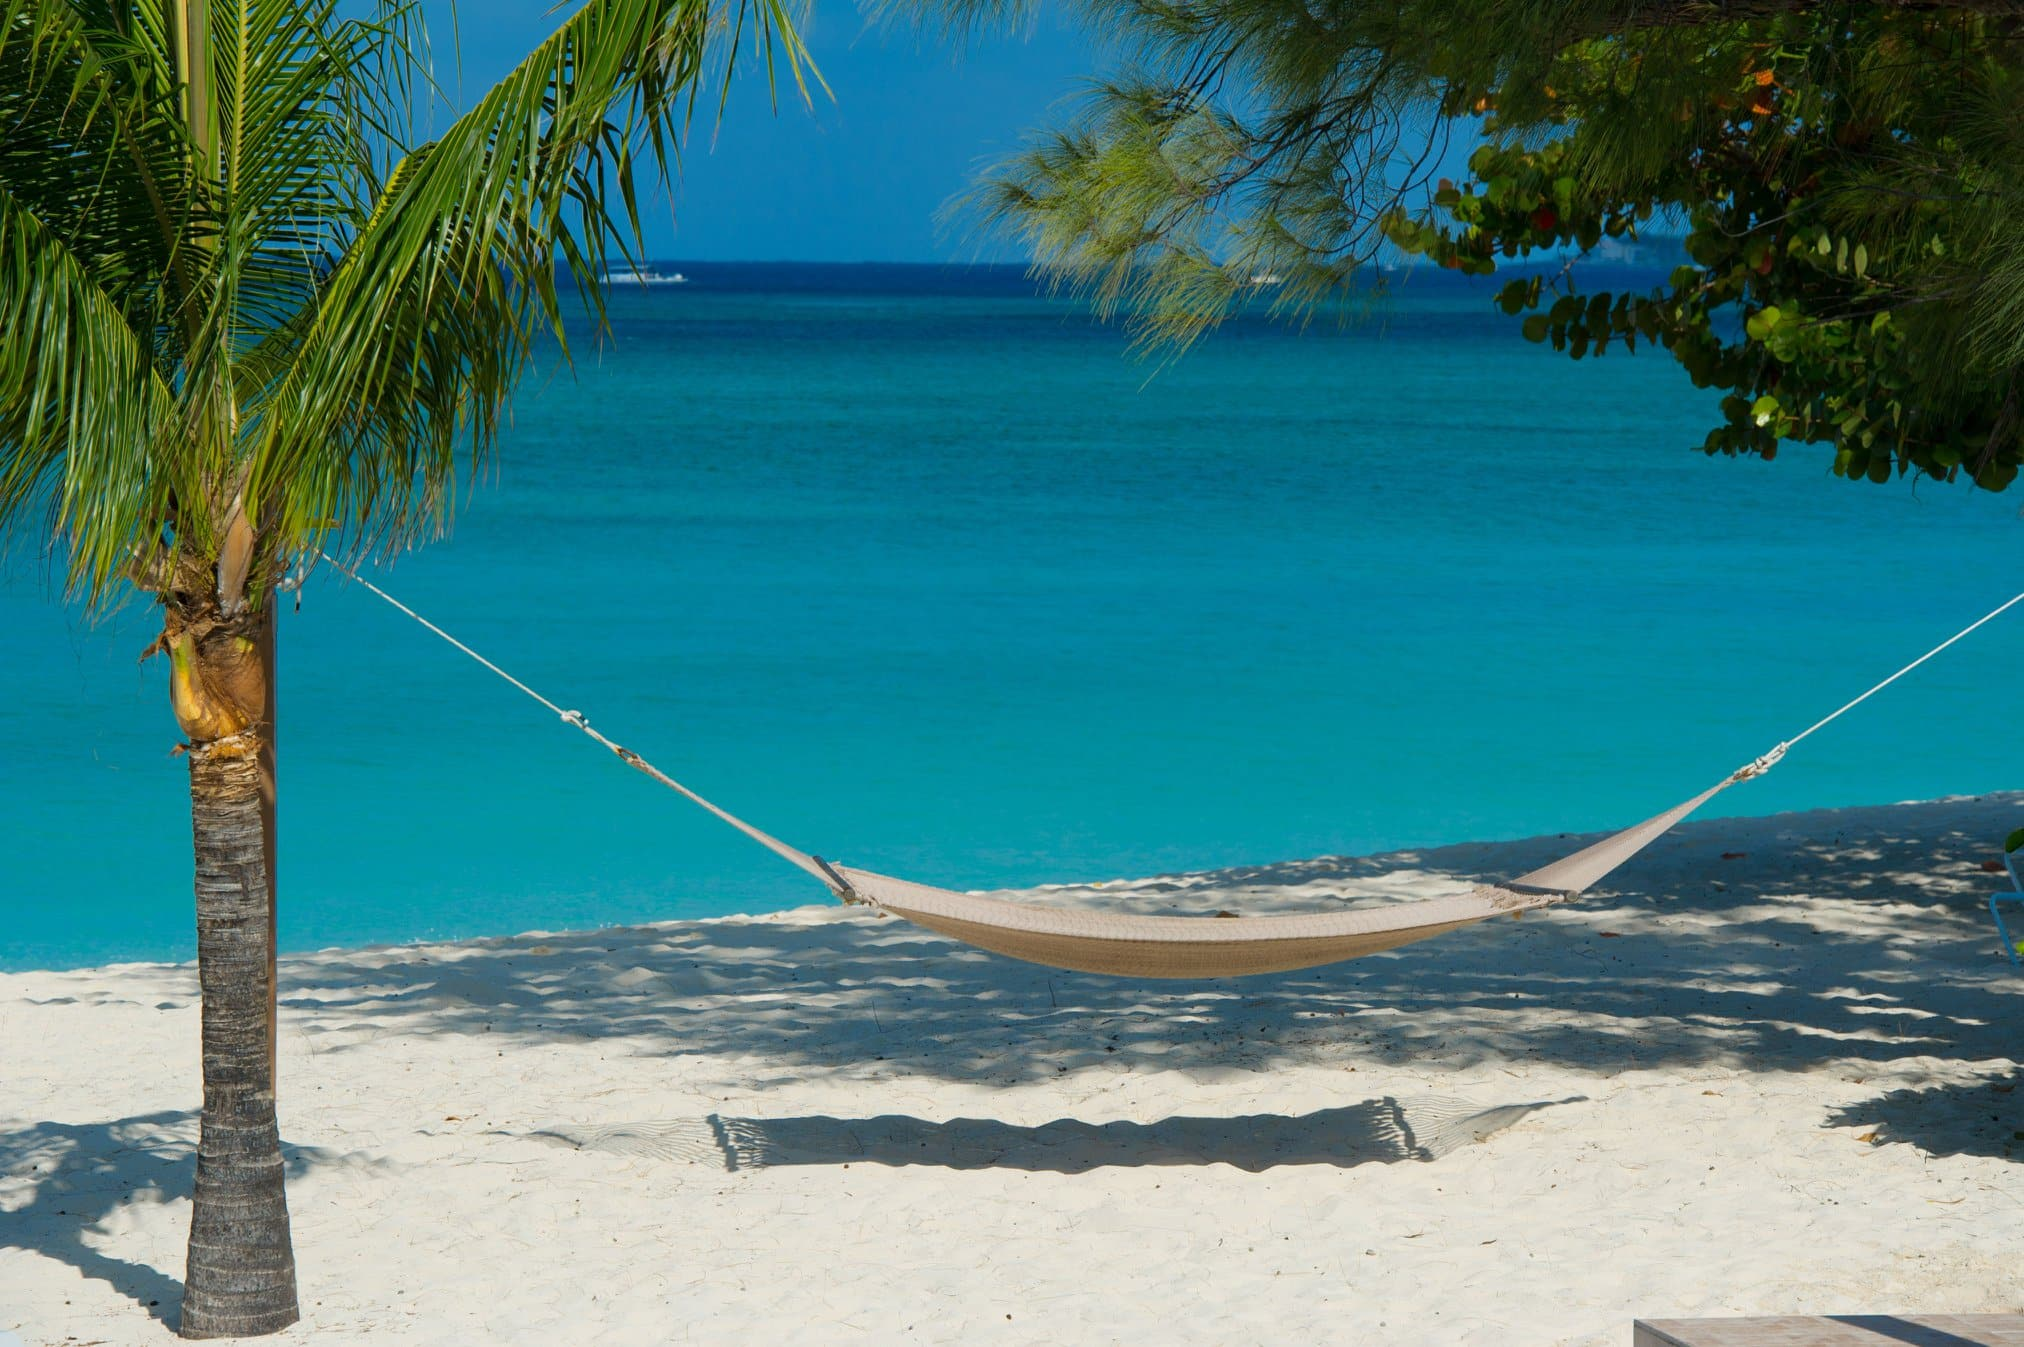 Work From the Beach With Cayman Island's New Remote Worker Program travel